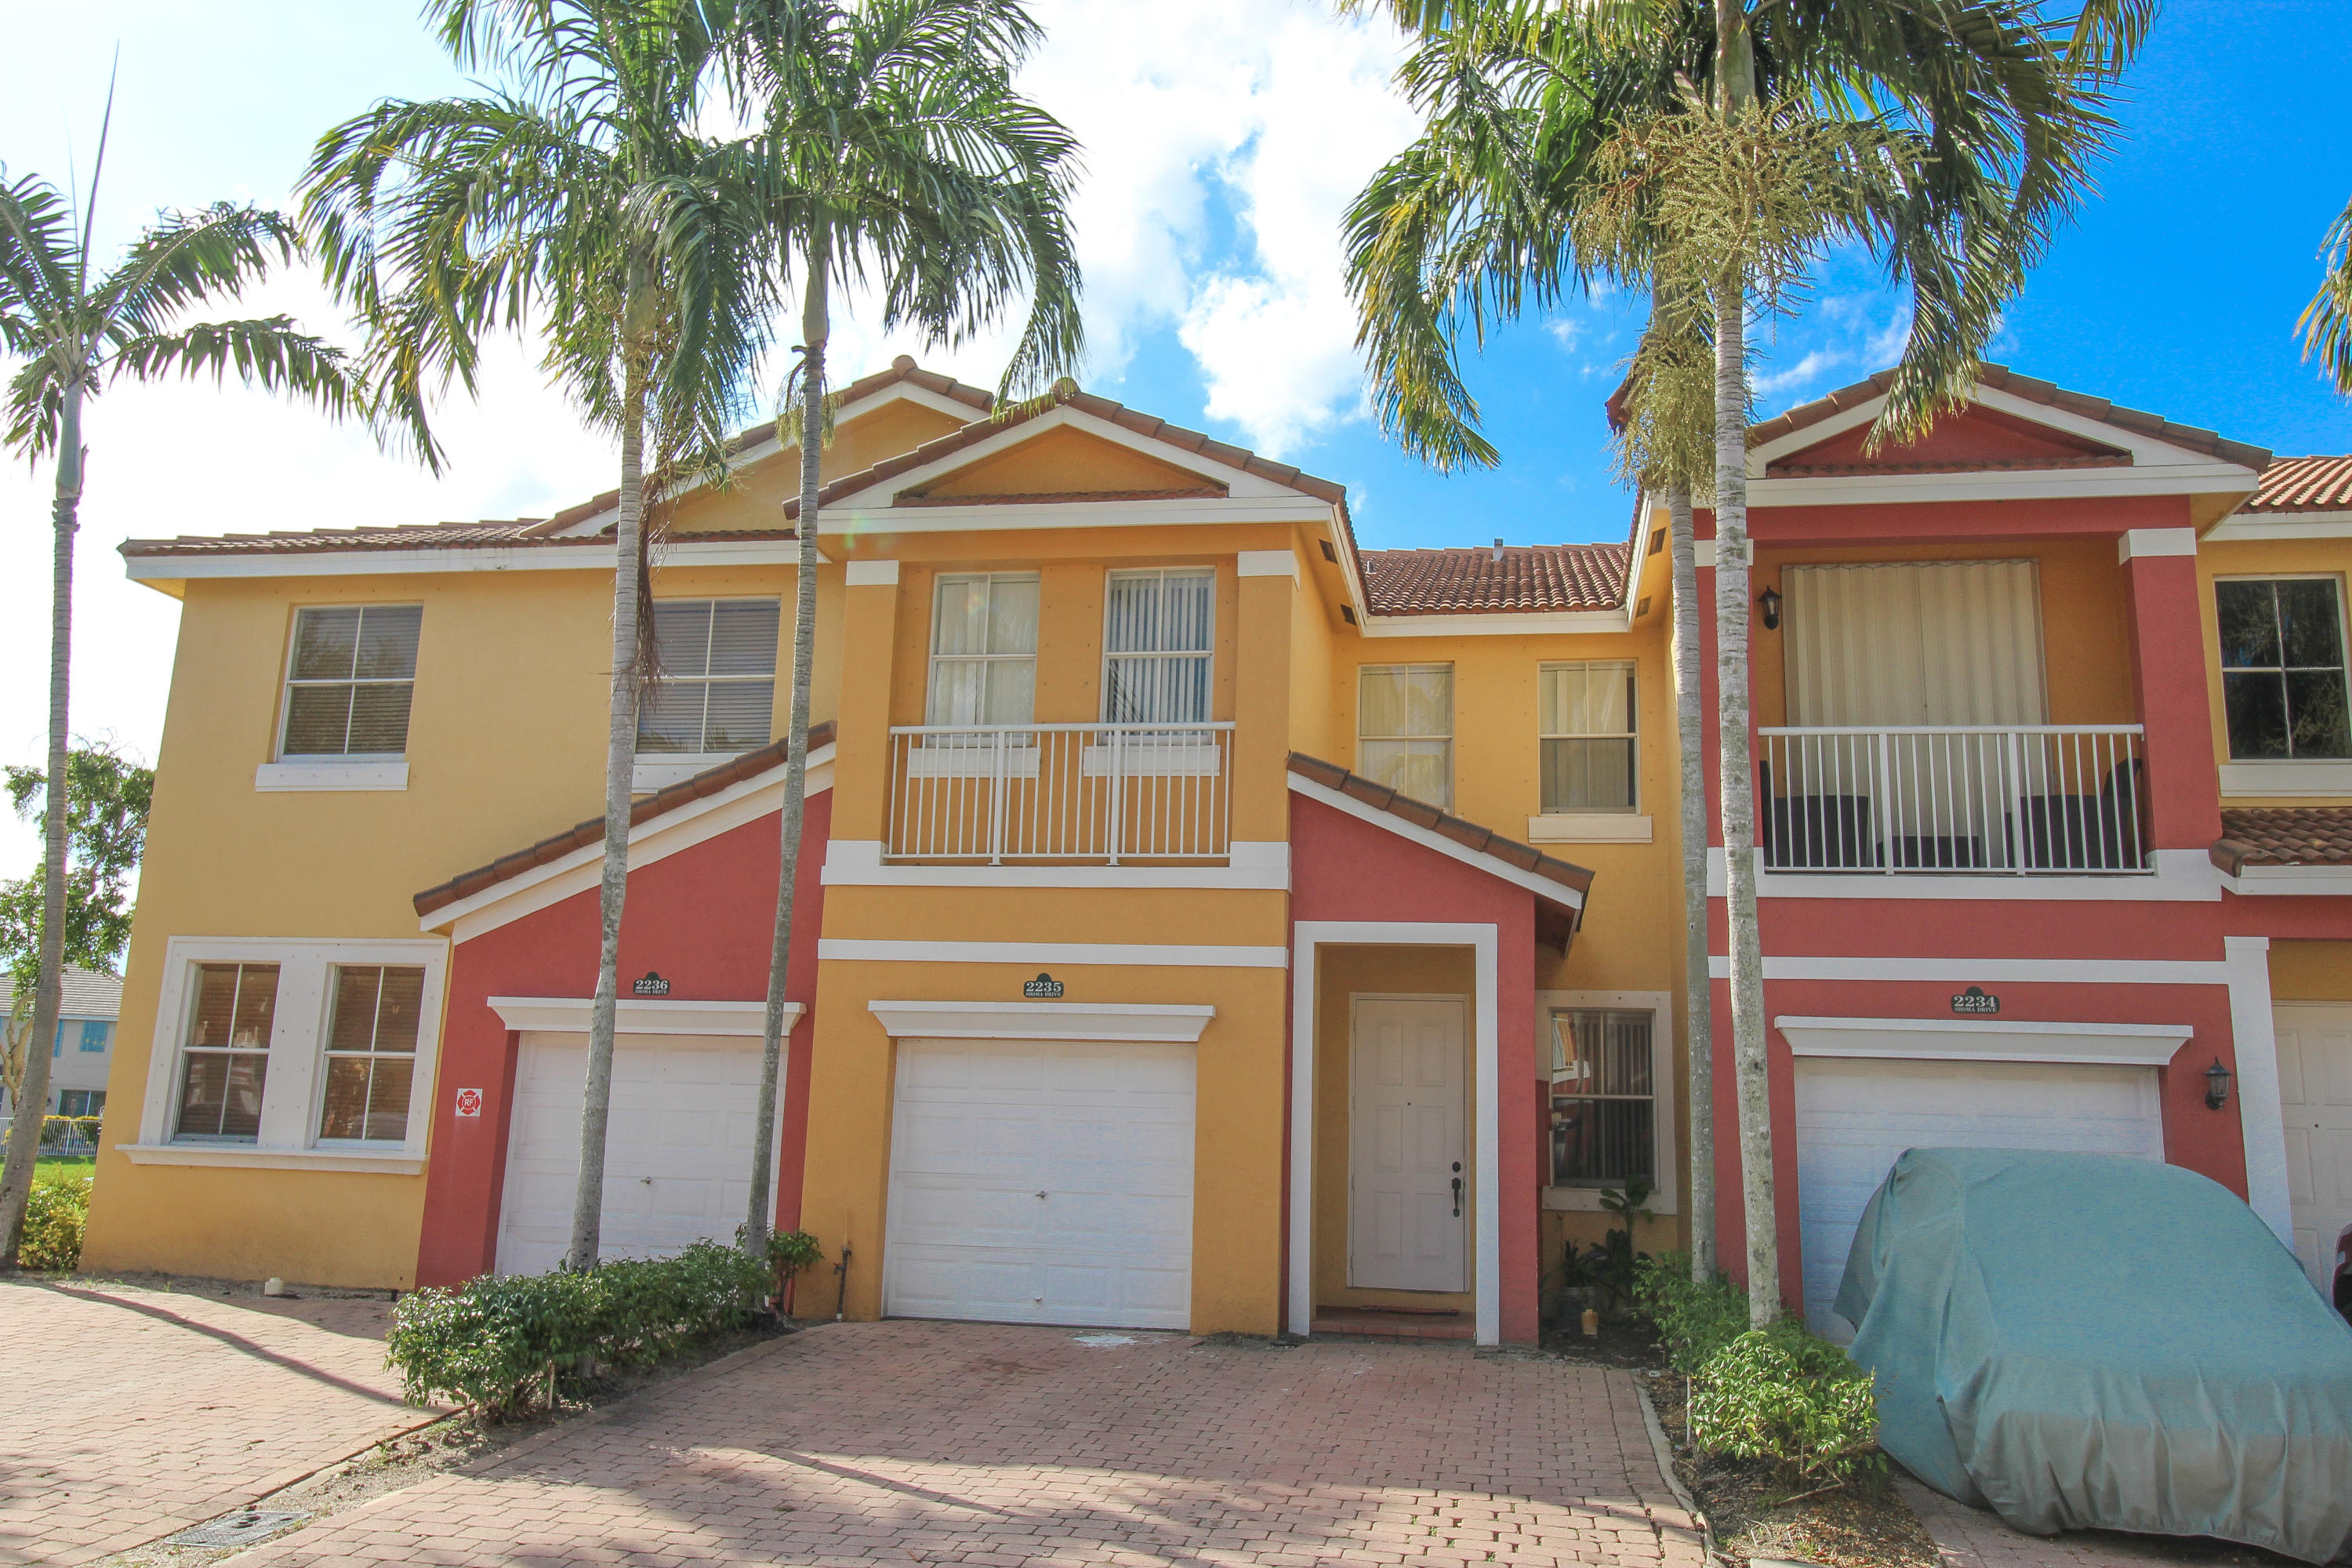 Home for sale in Shoma Royal Palm Beach Florida